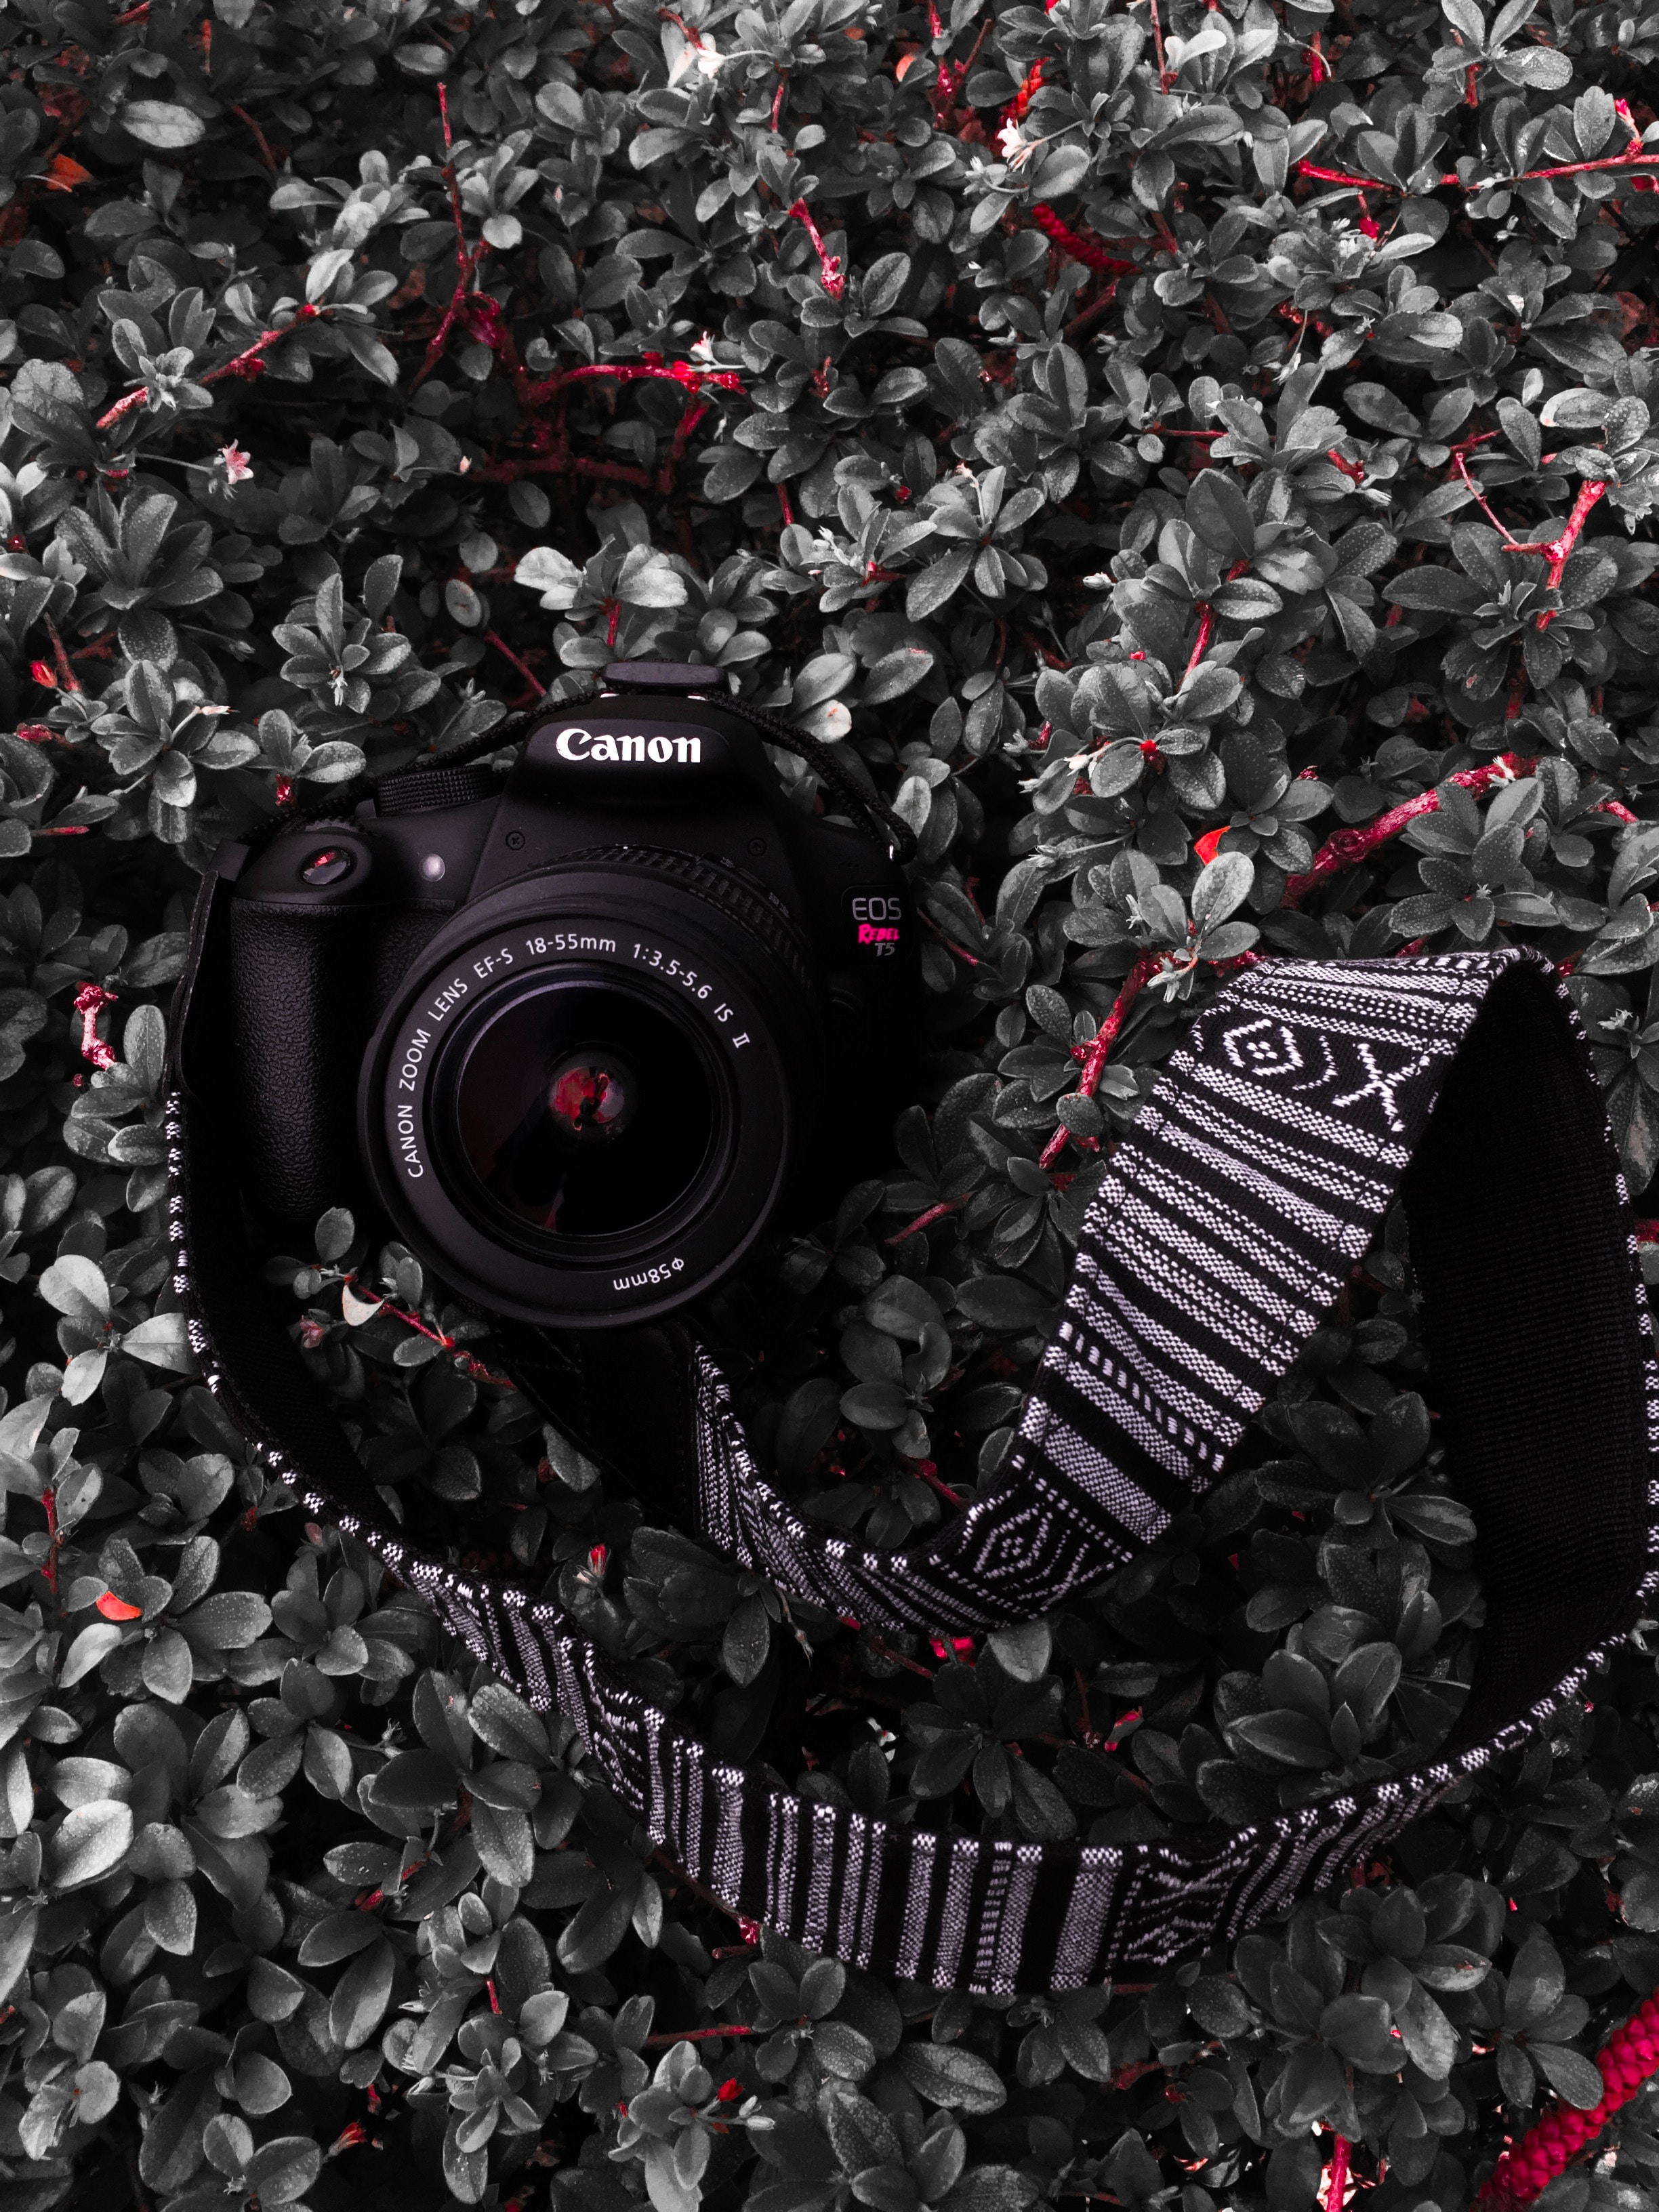 130532 download wallpaper Bush, Plant, Lens, Technologies, Technology, Camera, Strap, Thong screensavers and pictures for free